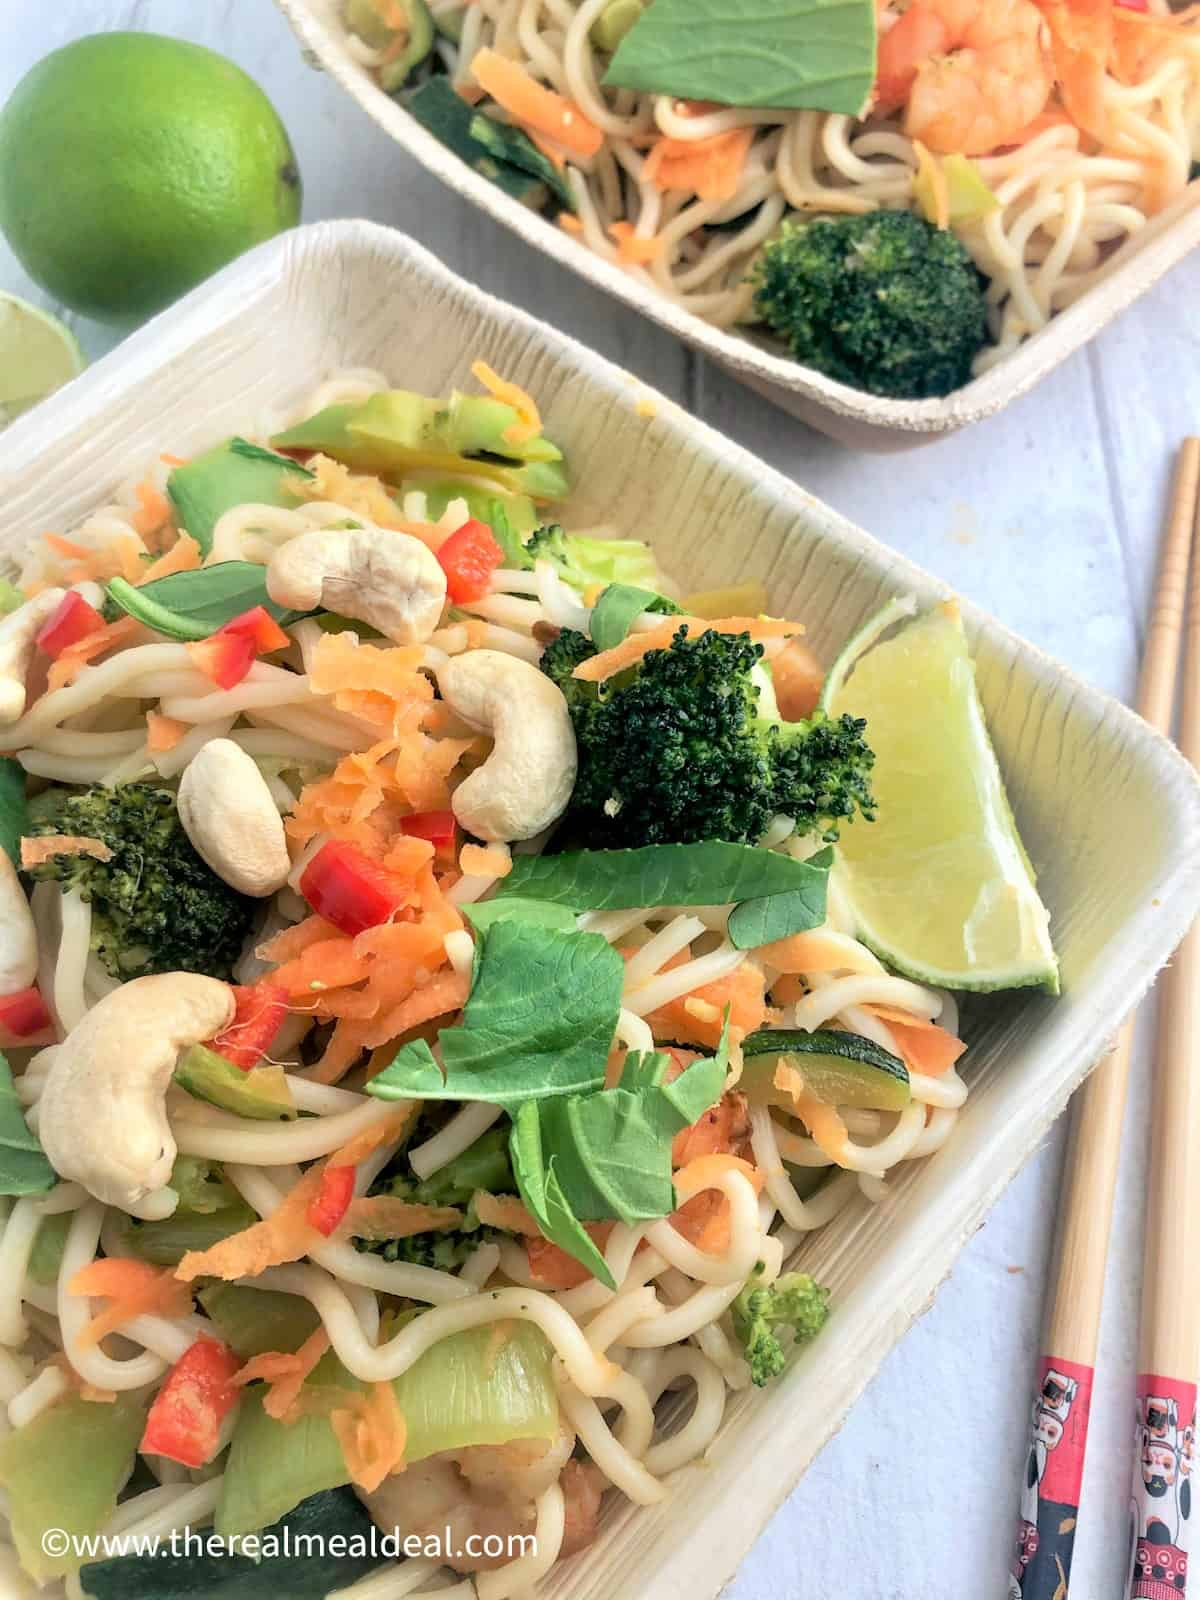 prawn stir fry with noodles in bamboo dish with chop sticks